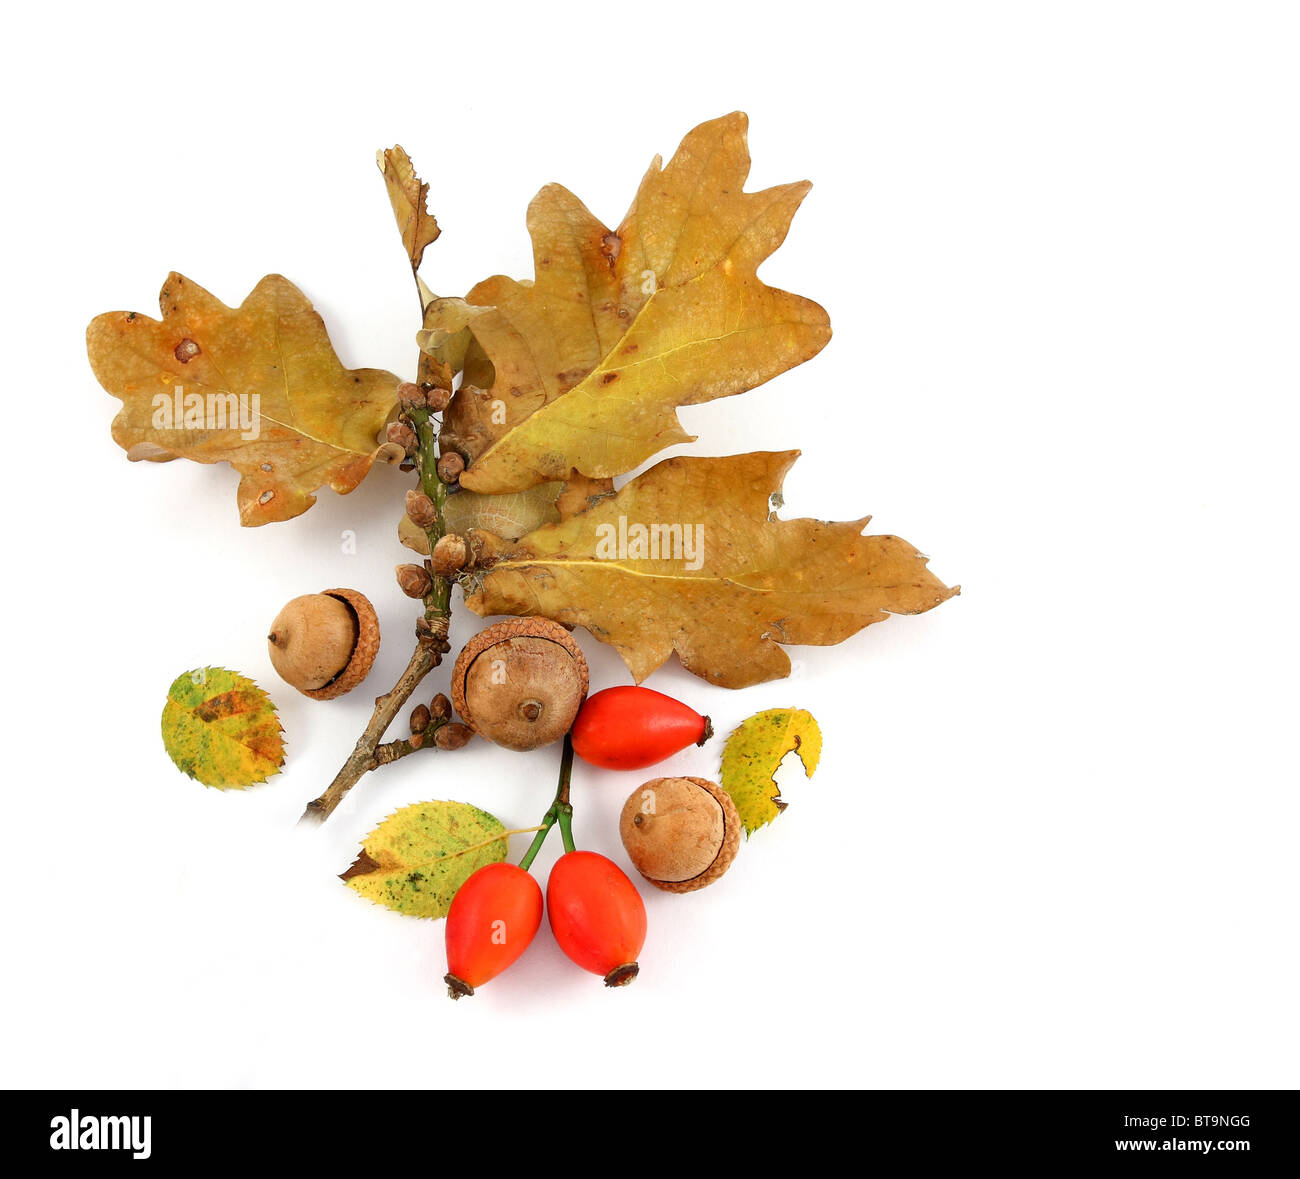 Oak twig with rose hips and acorns - Stock Image